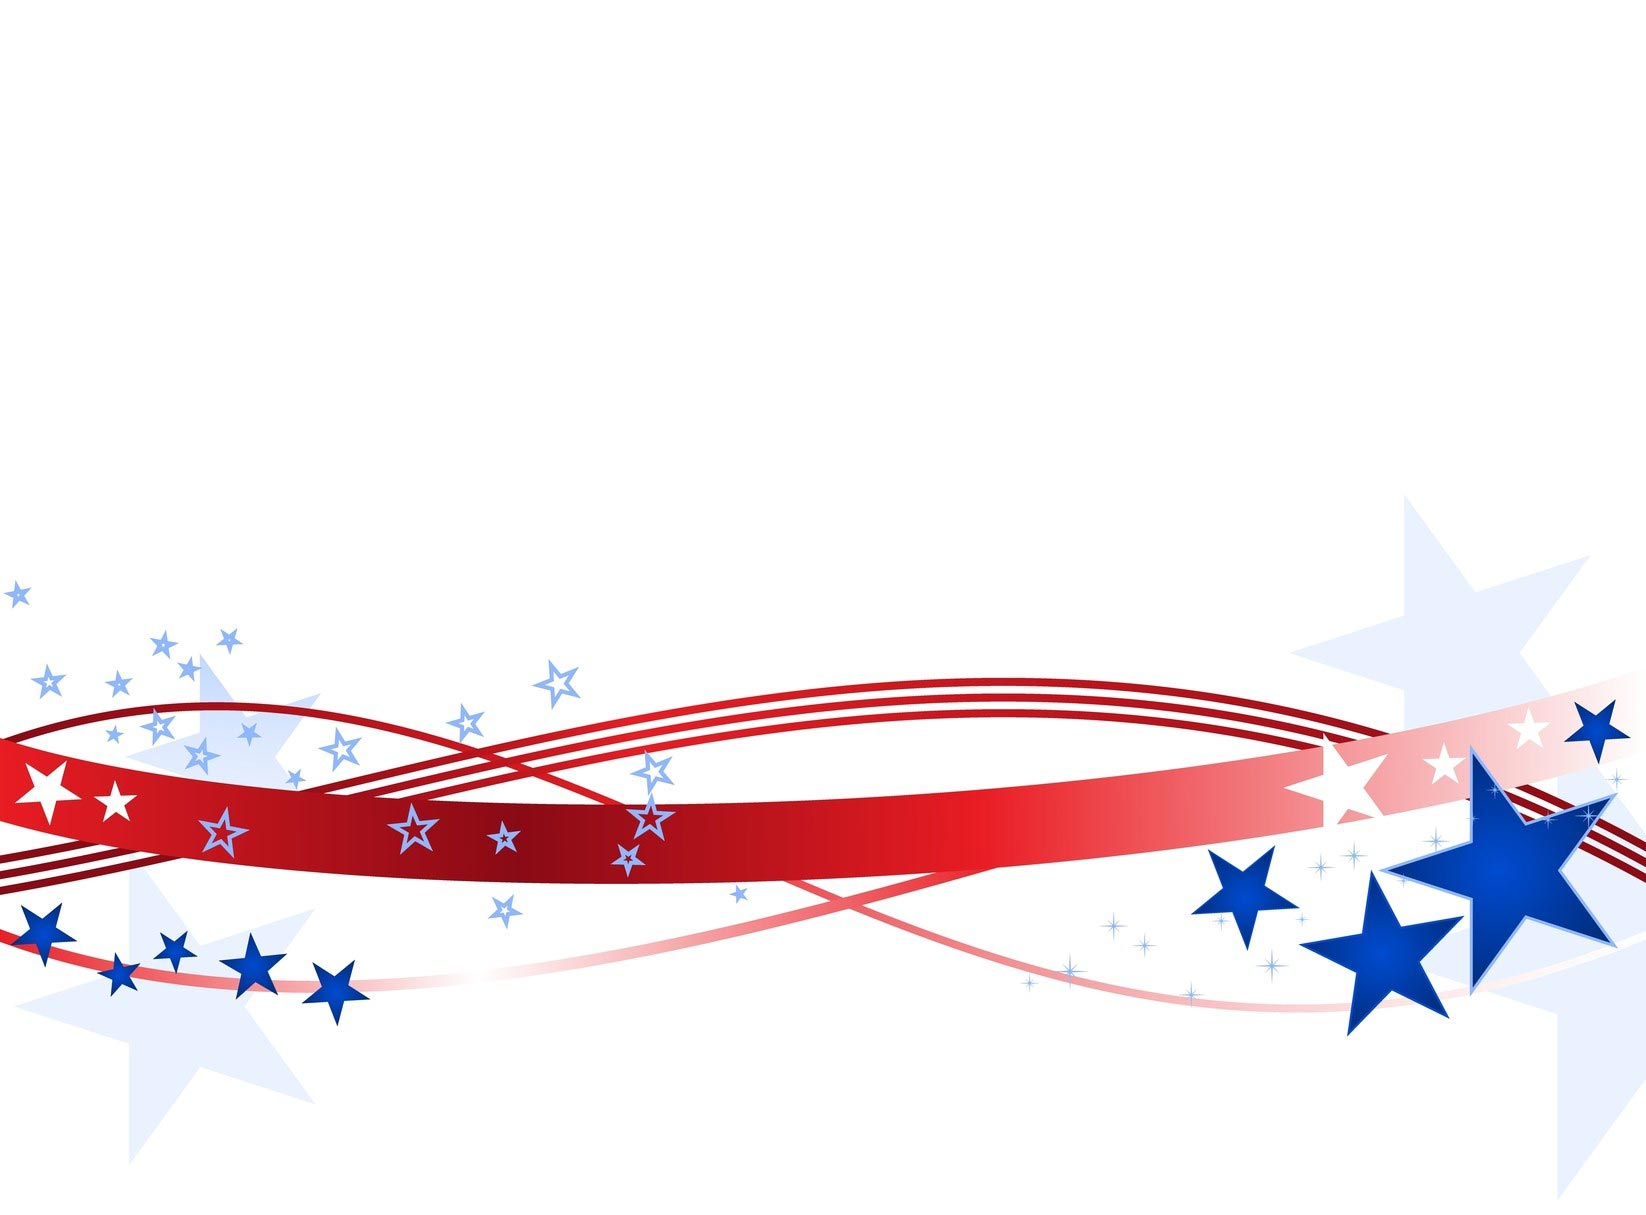 Free vector clipart fourth of july border graphic download Free patriotic clip art banners on dayasriomb bid 2 - Clip Art Library graphic download